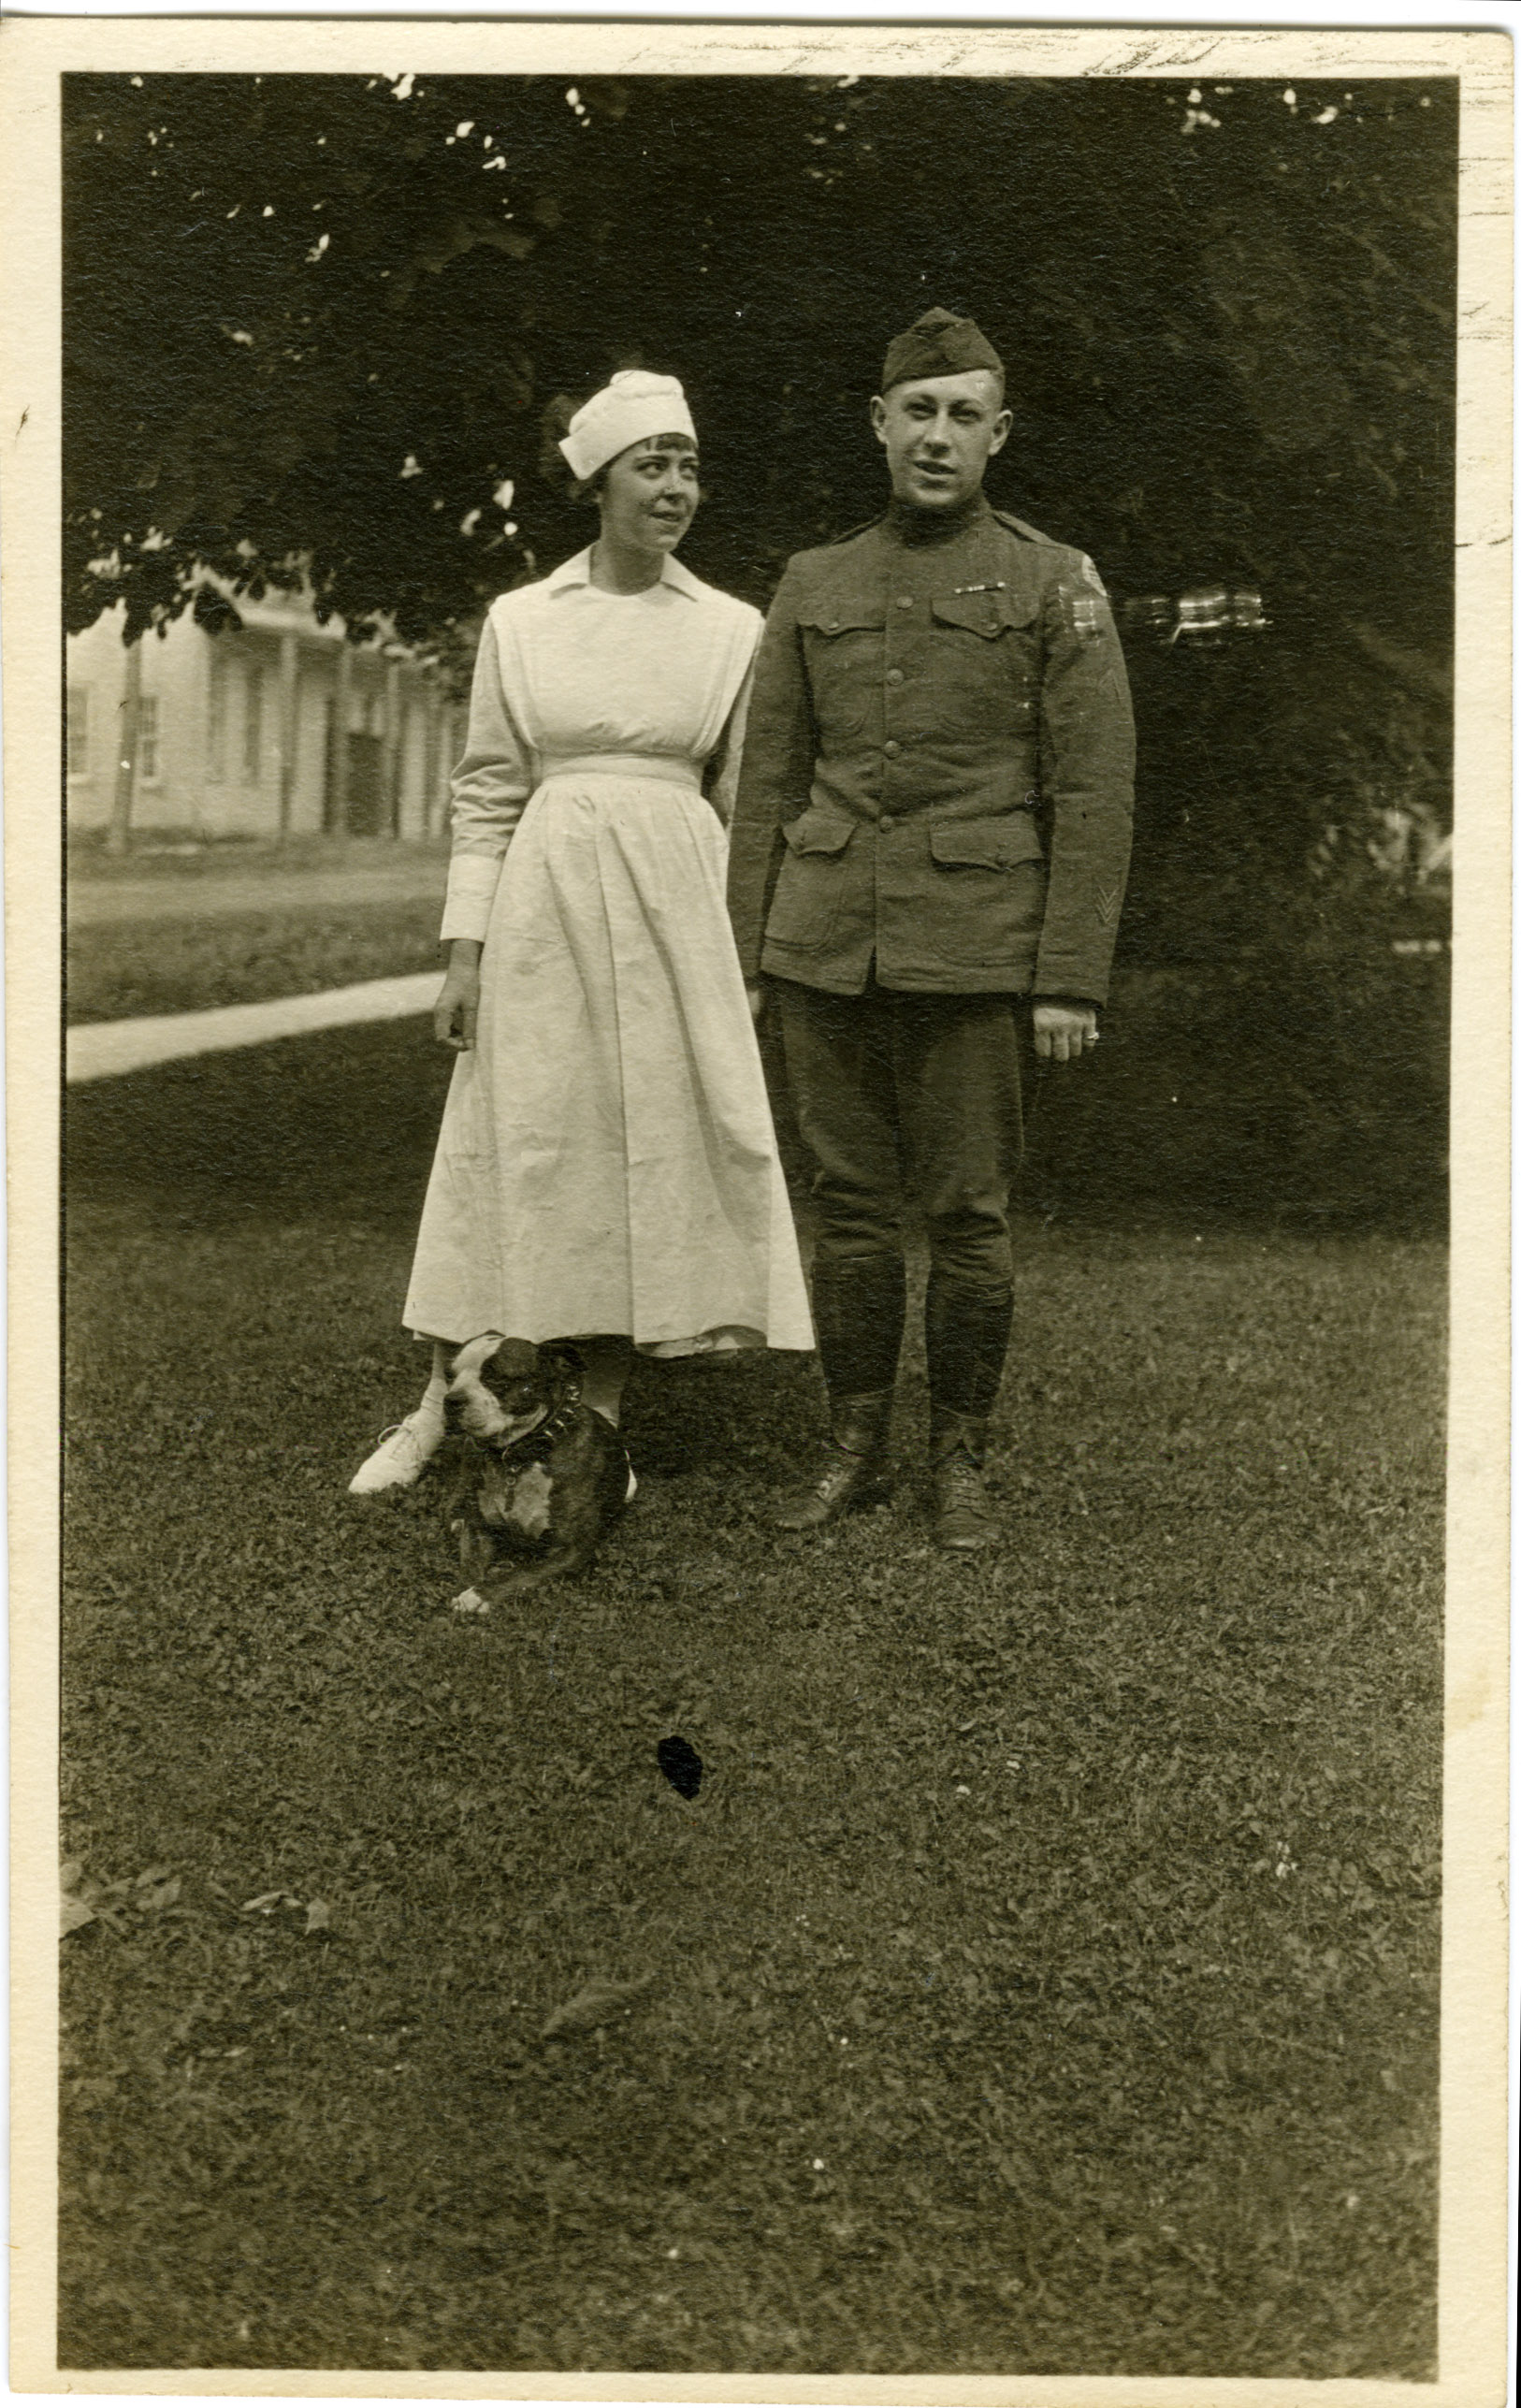 Image of Lawrence D. Yeomans, nurse, and dog